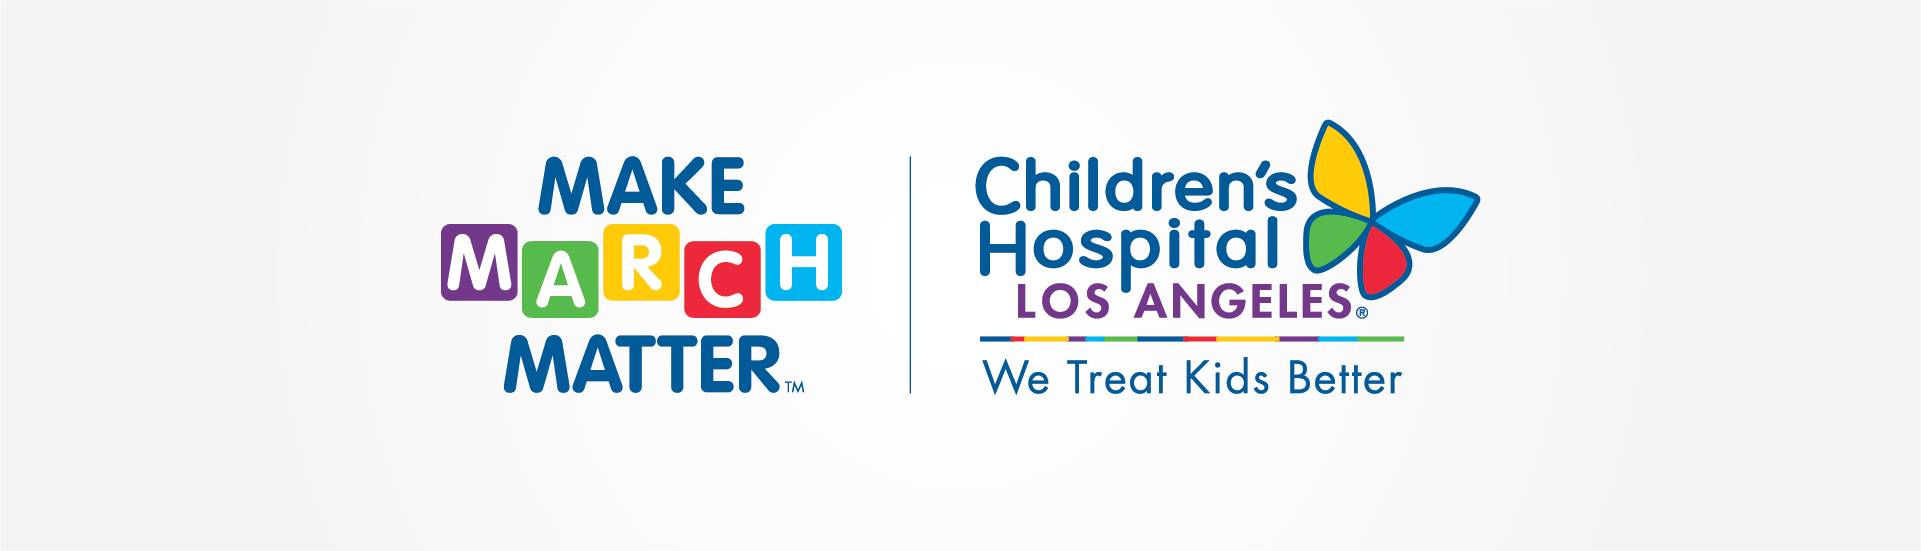 Making March Matter With Children's Hospital Los Angeles